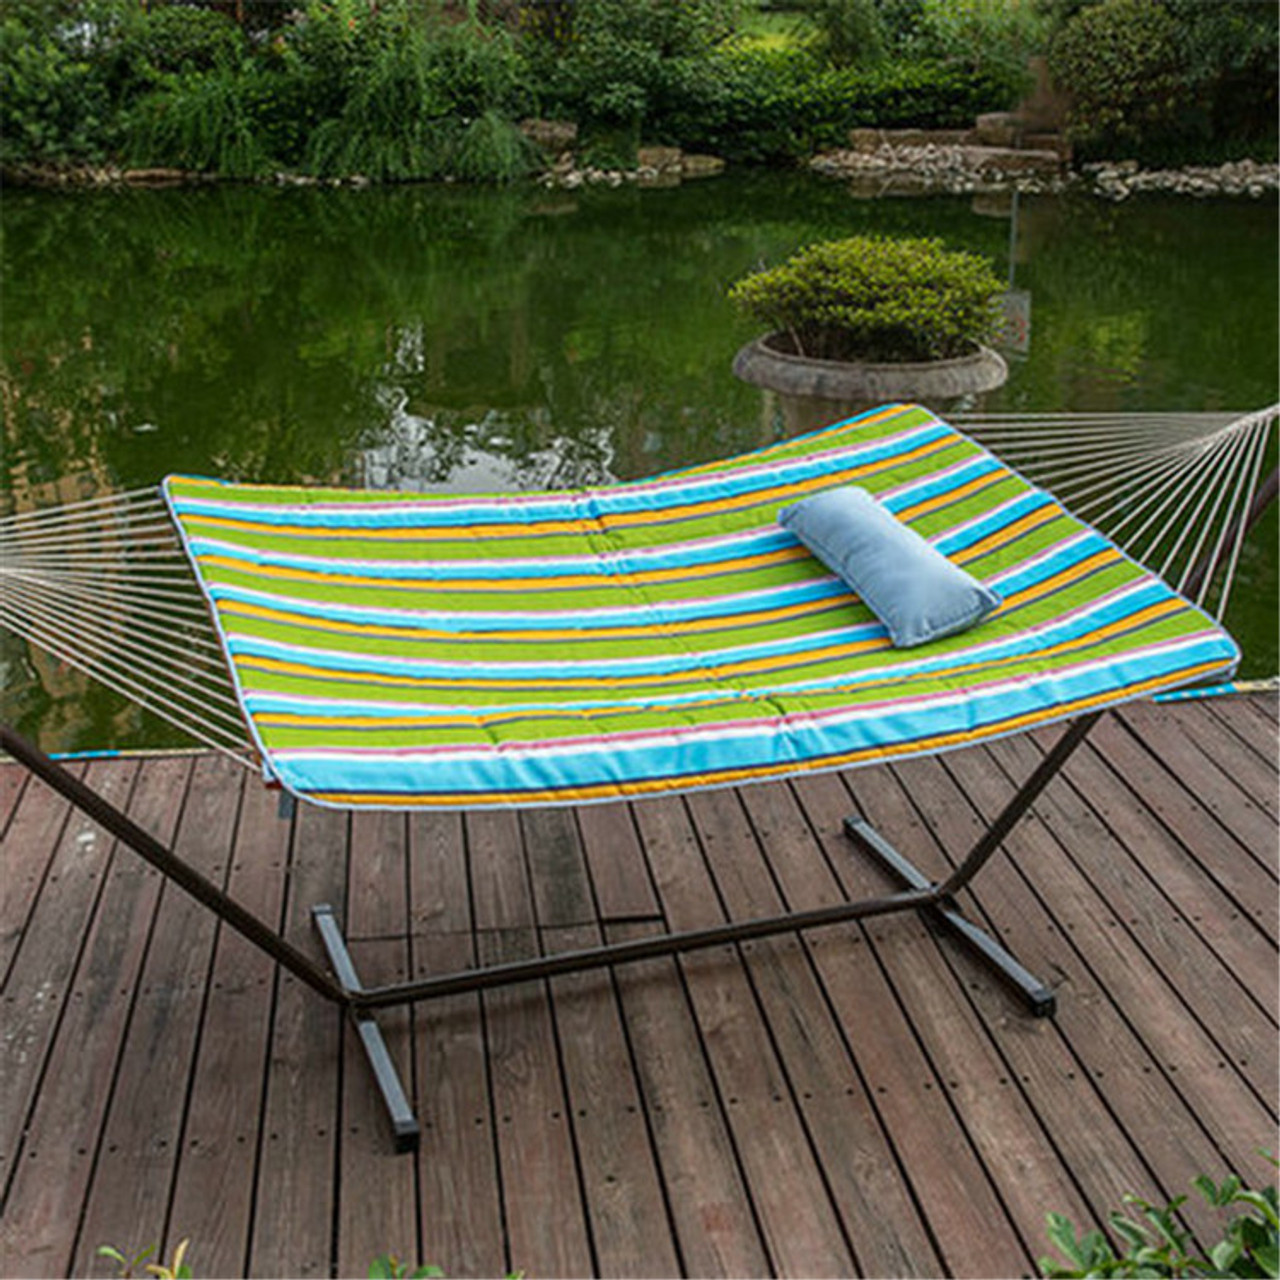 lazy daze hammocks 12 feet steel hammock stand with cotton rope hammock  bo quilted polyester lazydaze hammocks 12 feet steel hammock stand with cotton rope      rh   sundaleoutdoor